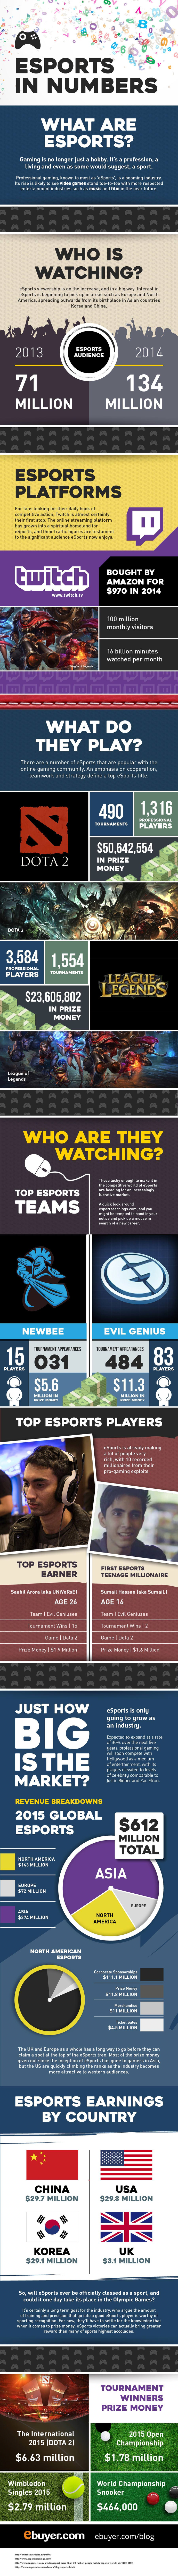 NIES_infographic_web